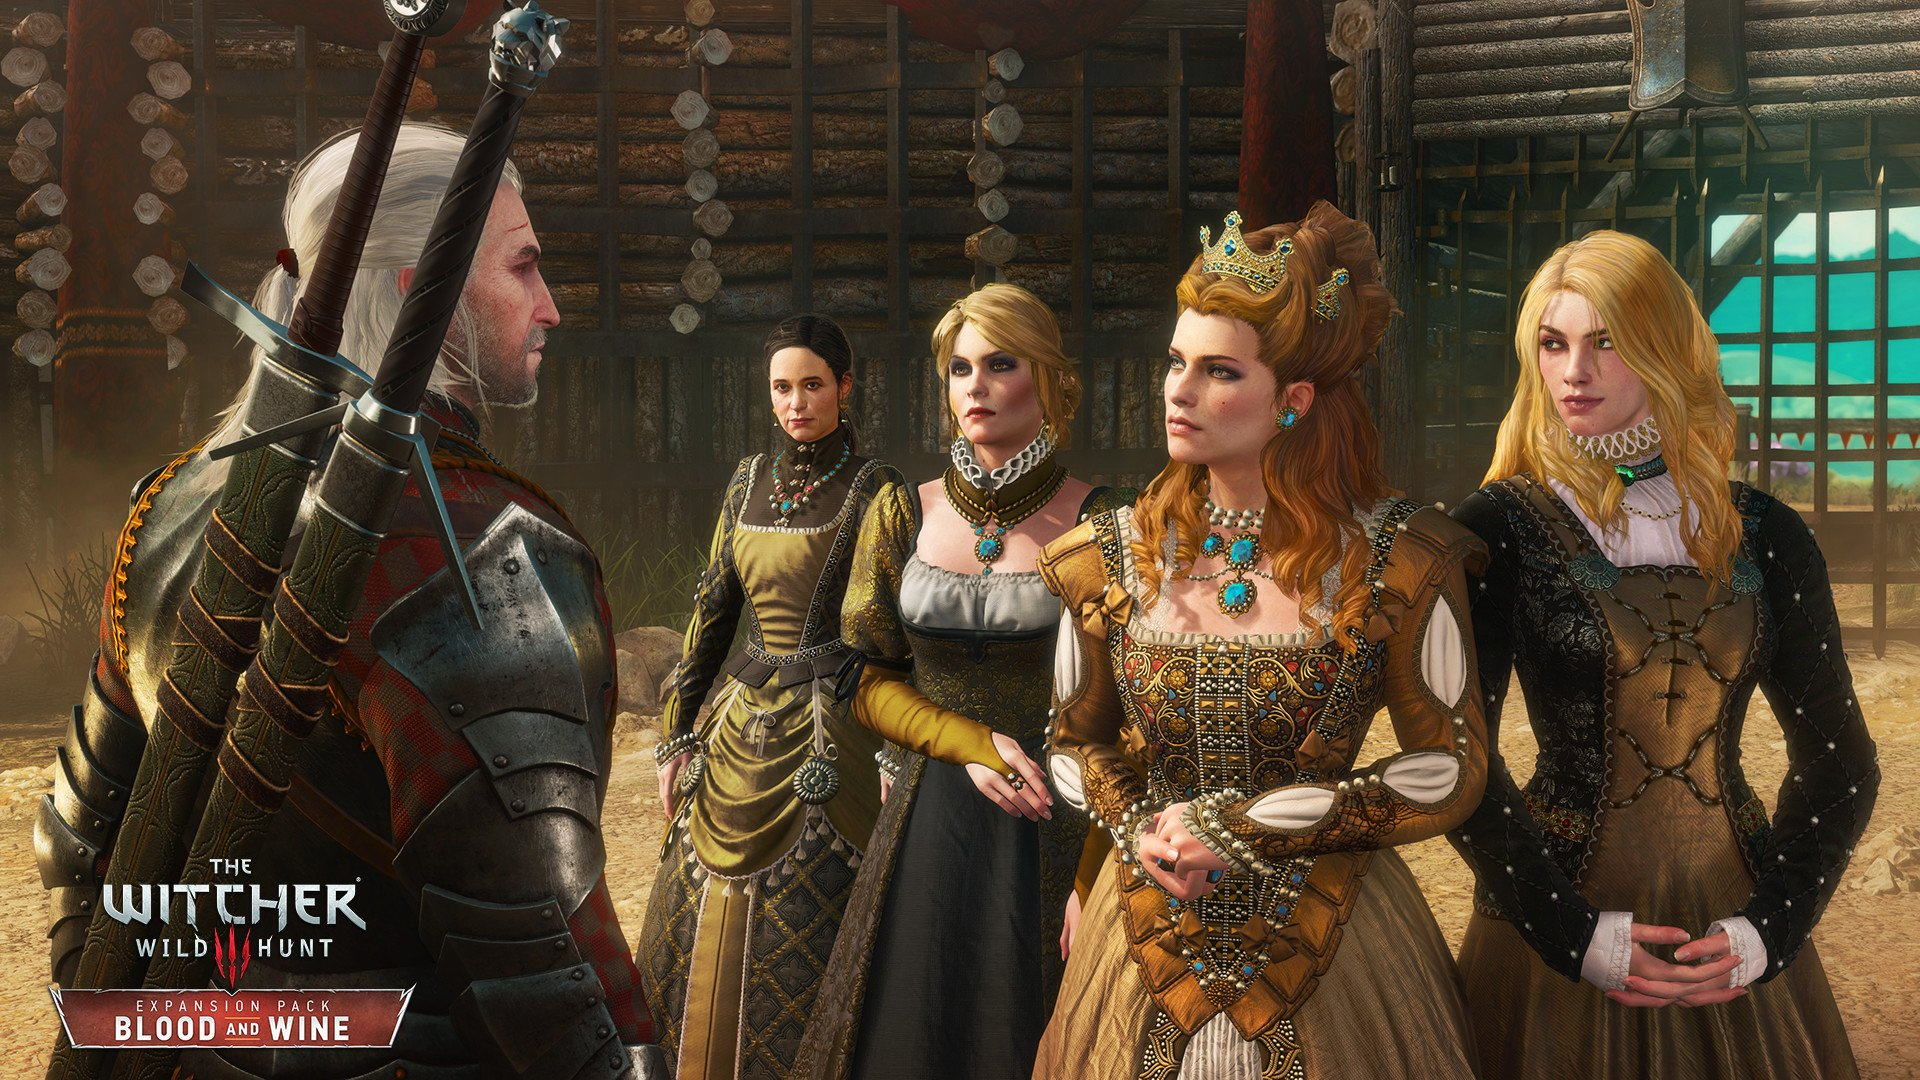 The Witcher 3 sold nearly as well in 2019 as it did in its launch year screenshot